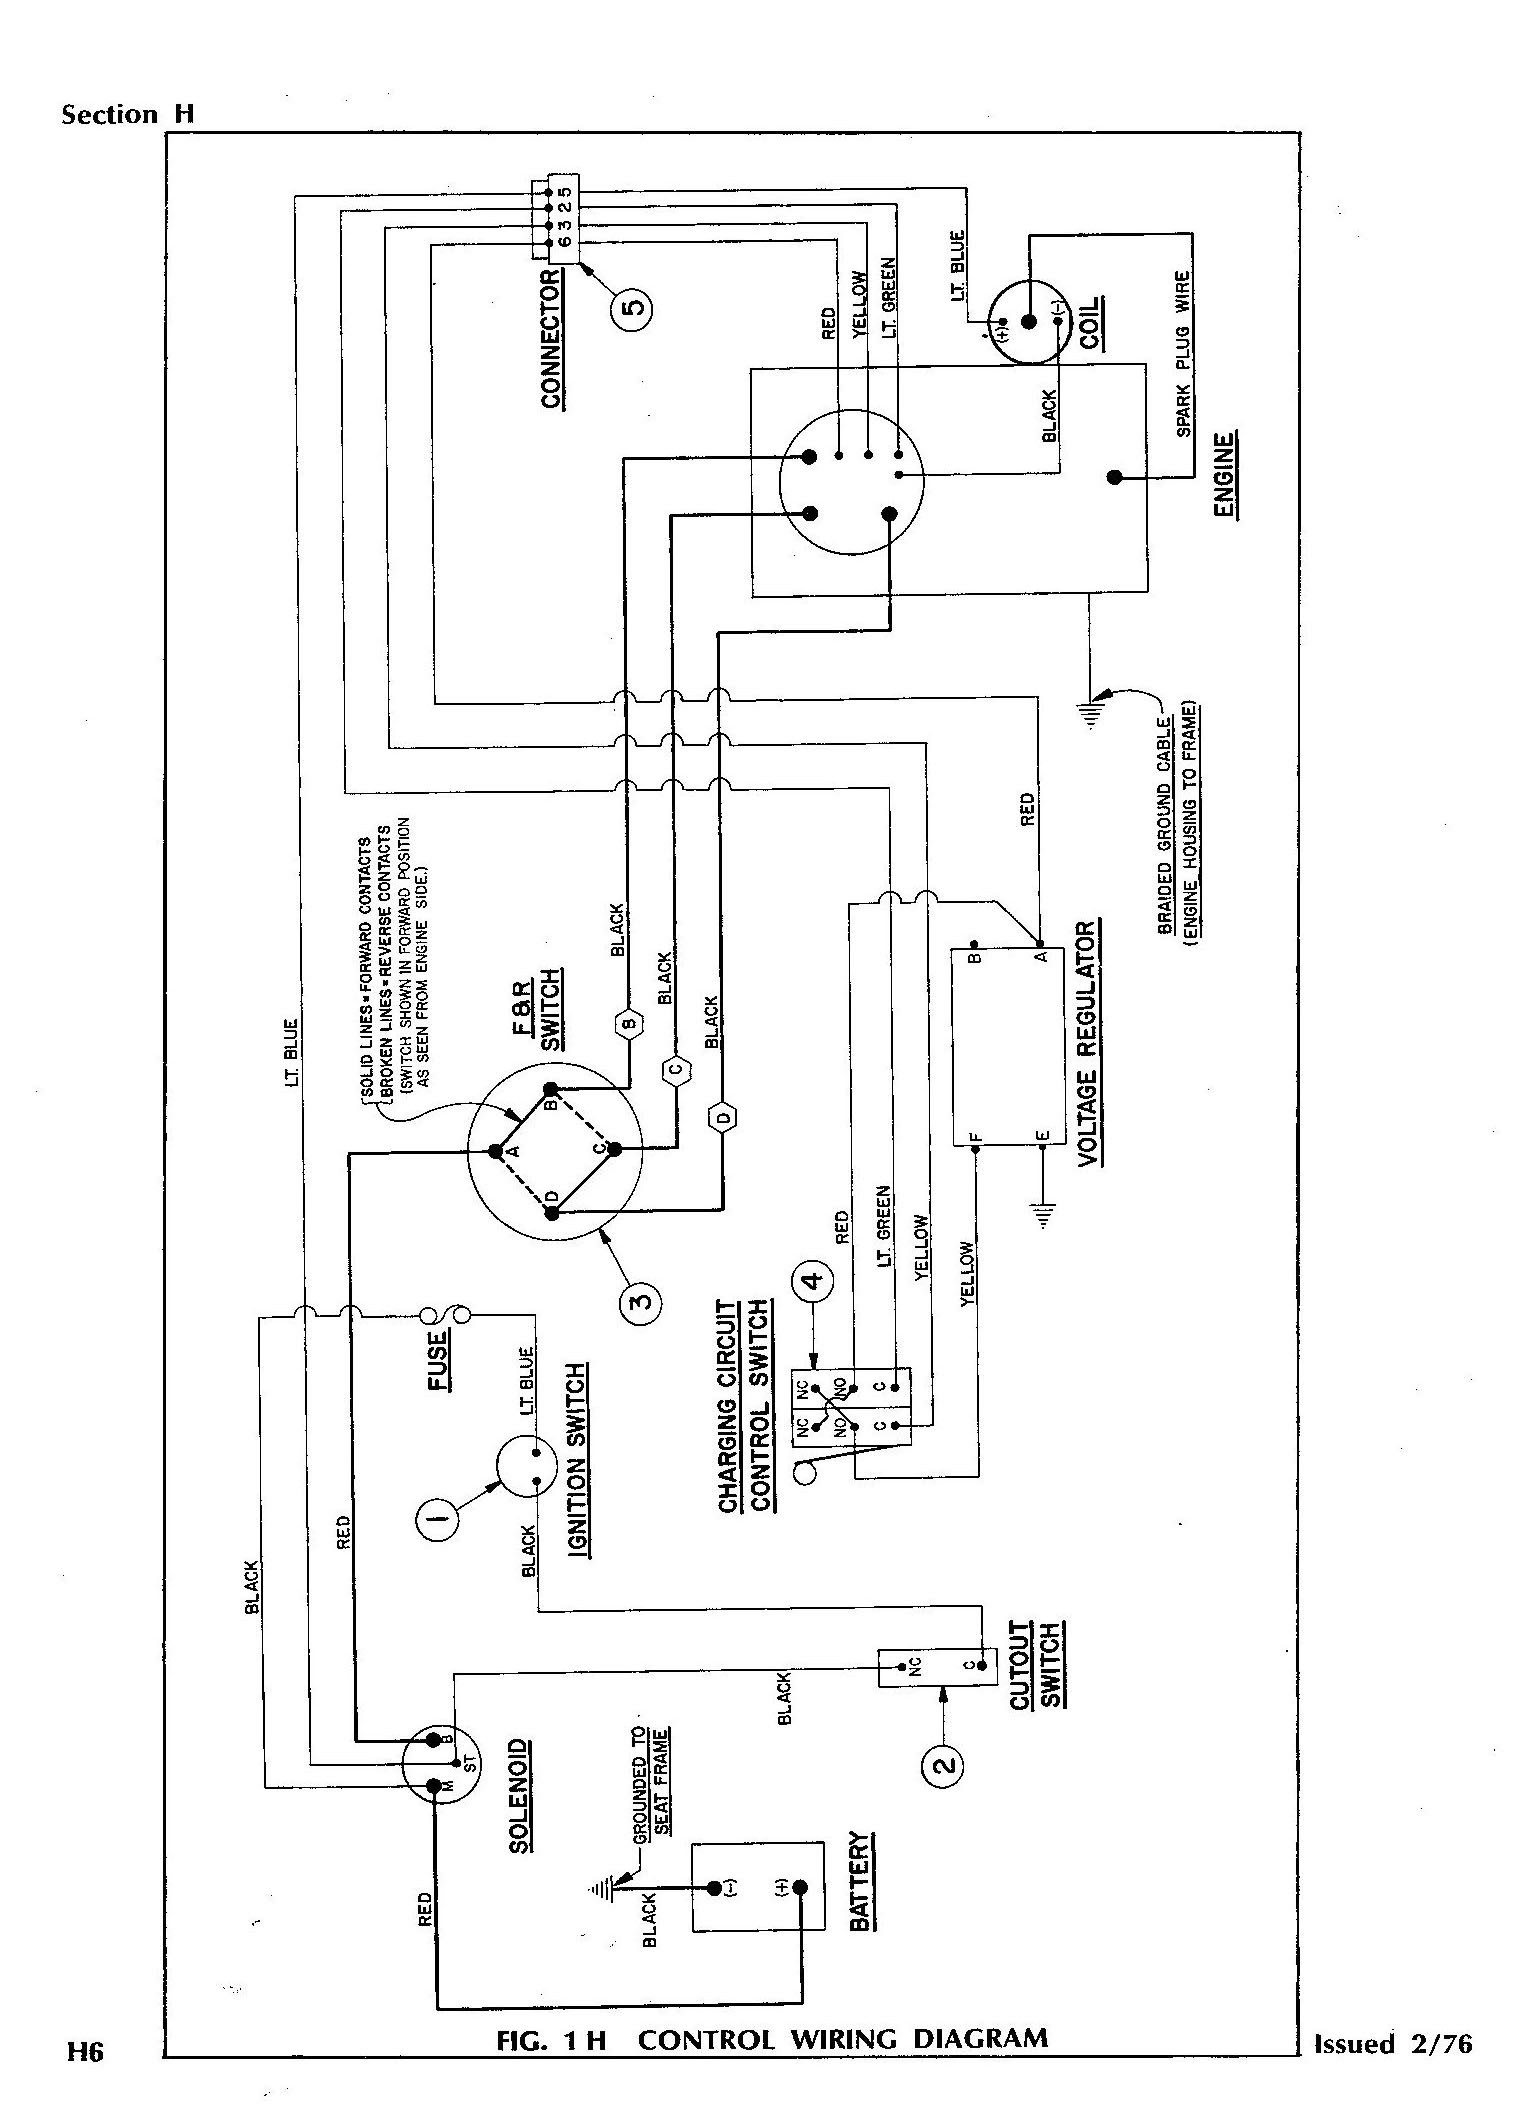 ezgo gas cart wiring diagram